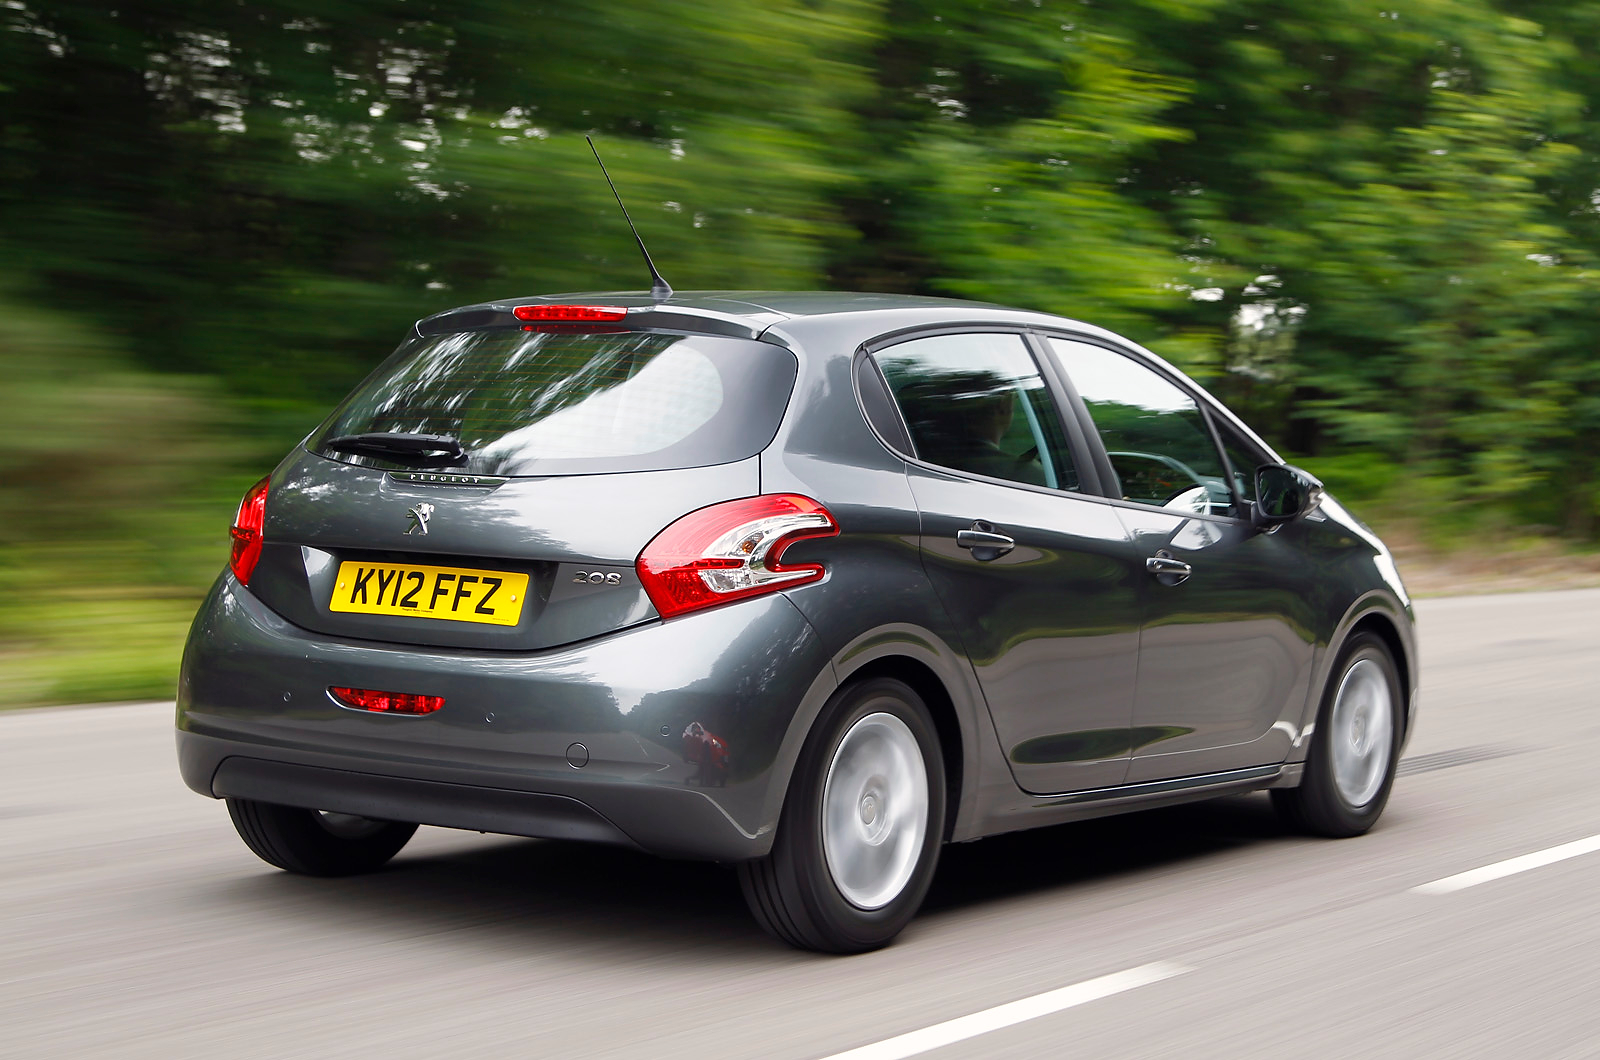 2013 peugeot 208 review car information news reviews videos photos advices and more. Black Bedroom Furniture Sets. Home Design Ideas